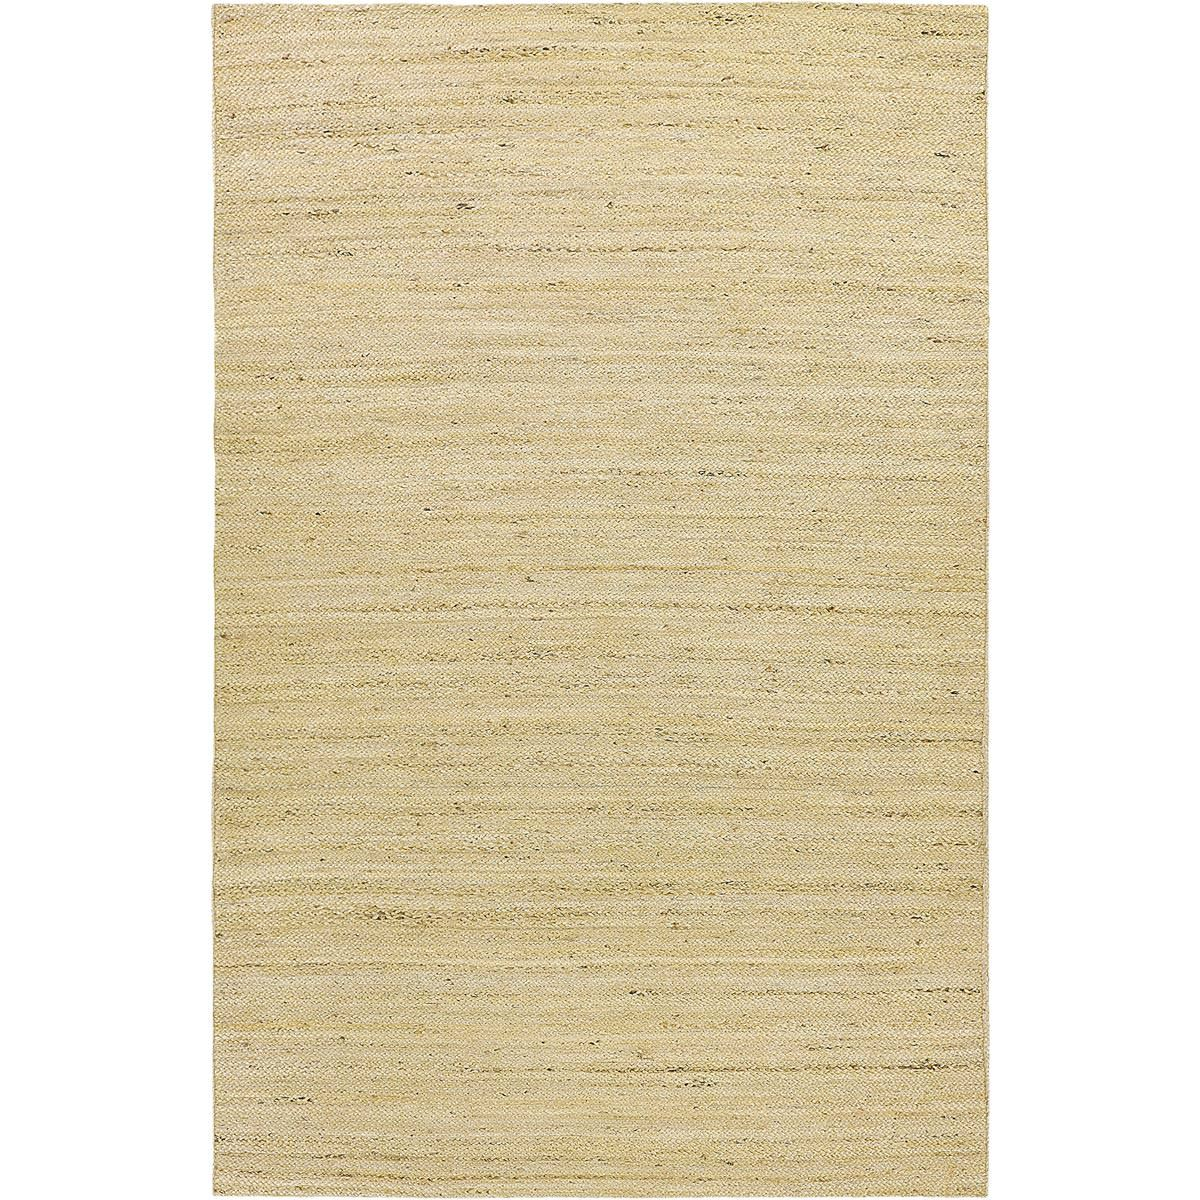 Flat Jute Rug 01 Light Beige 1